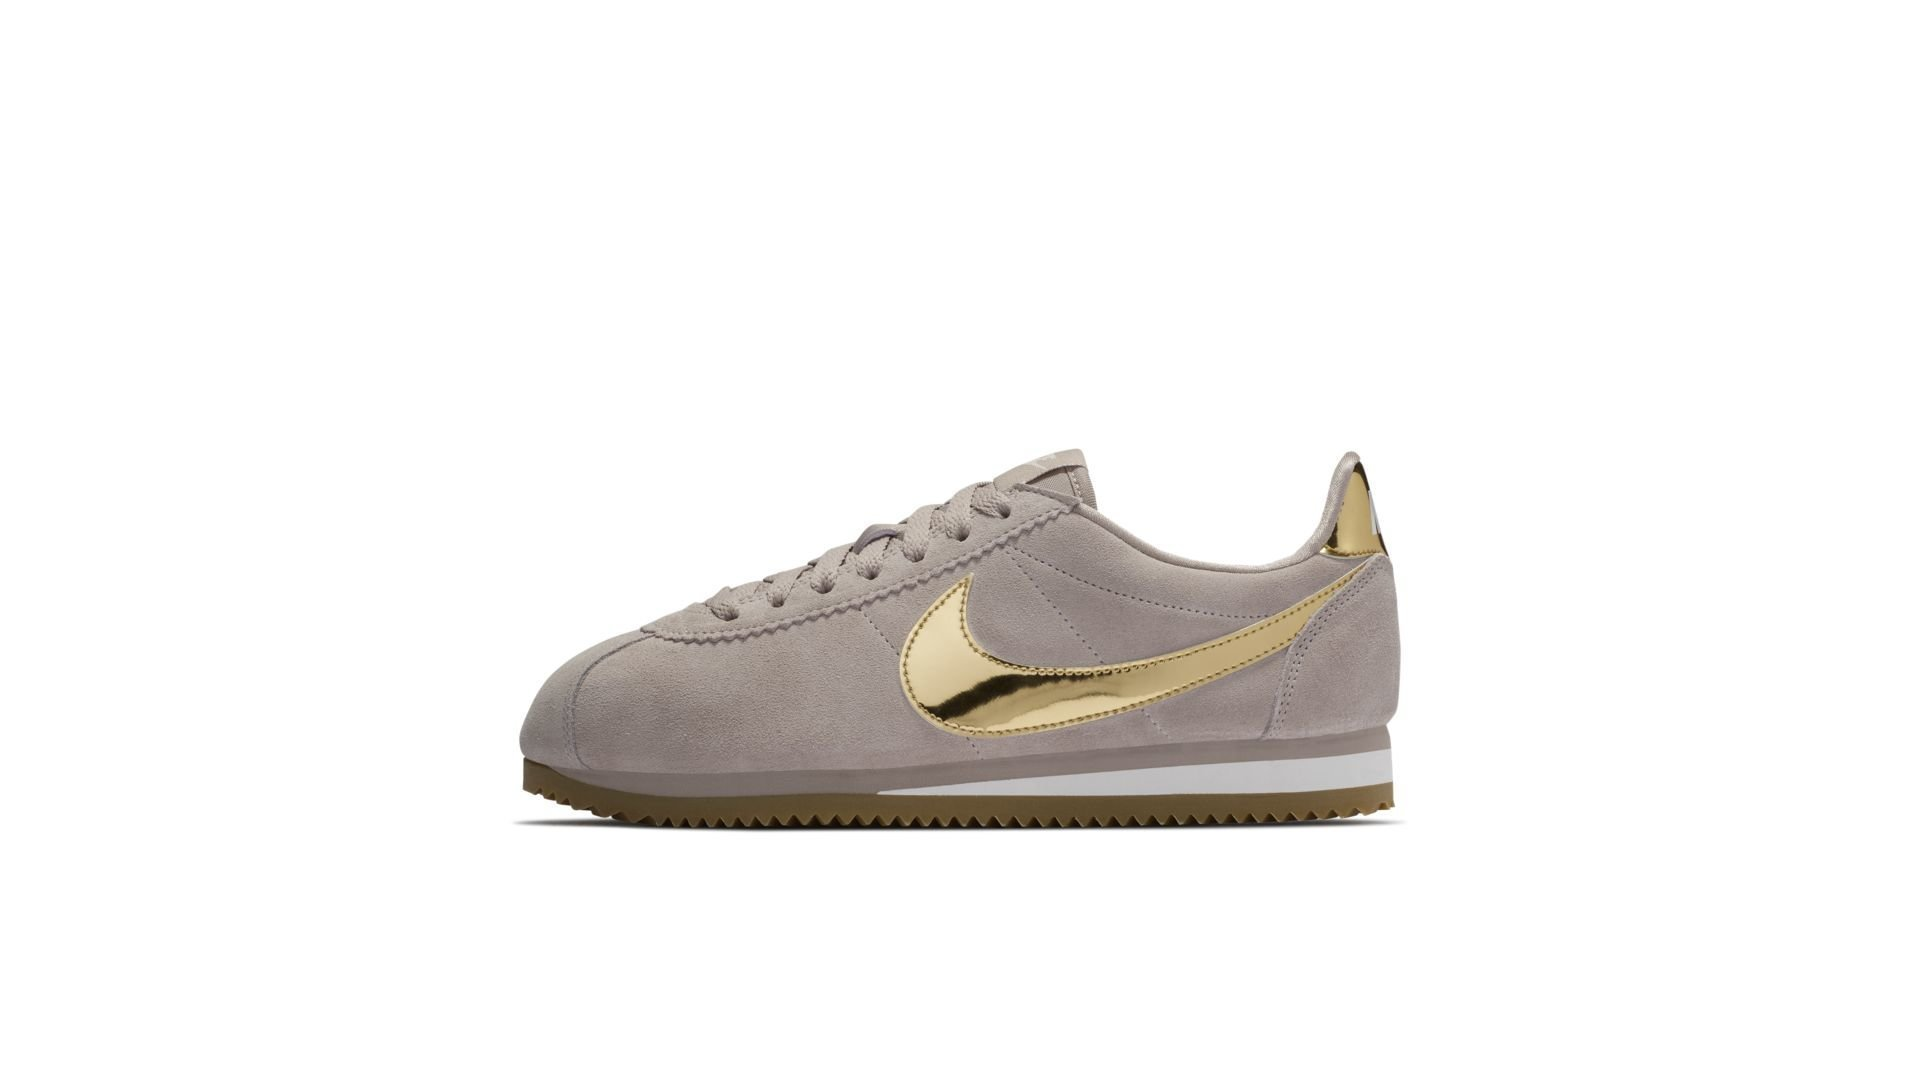 Nike Classic Cortez SE Diffused Taupe Metallic Gold (W) (902856-204)